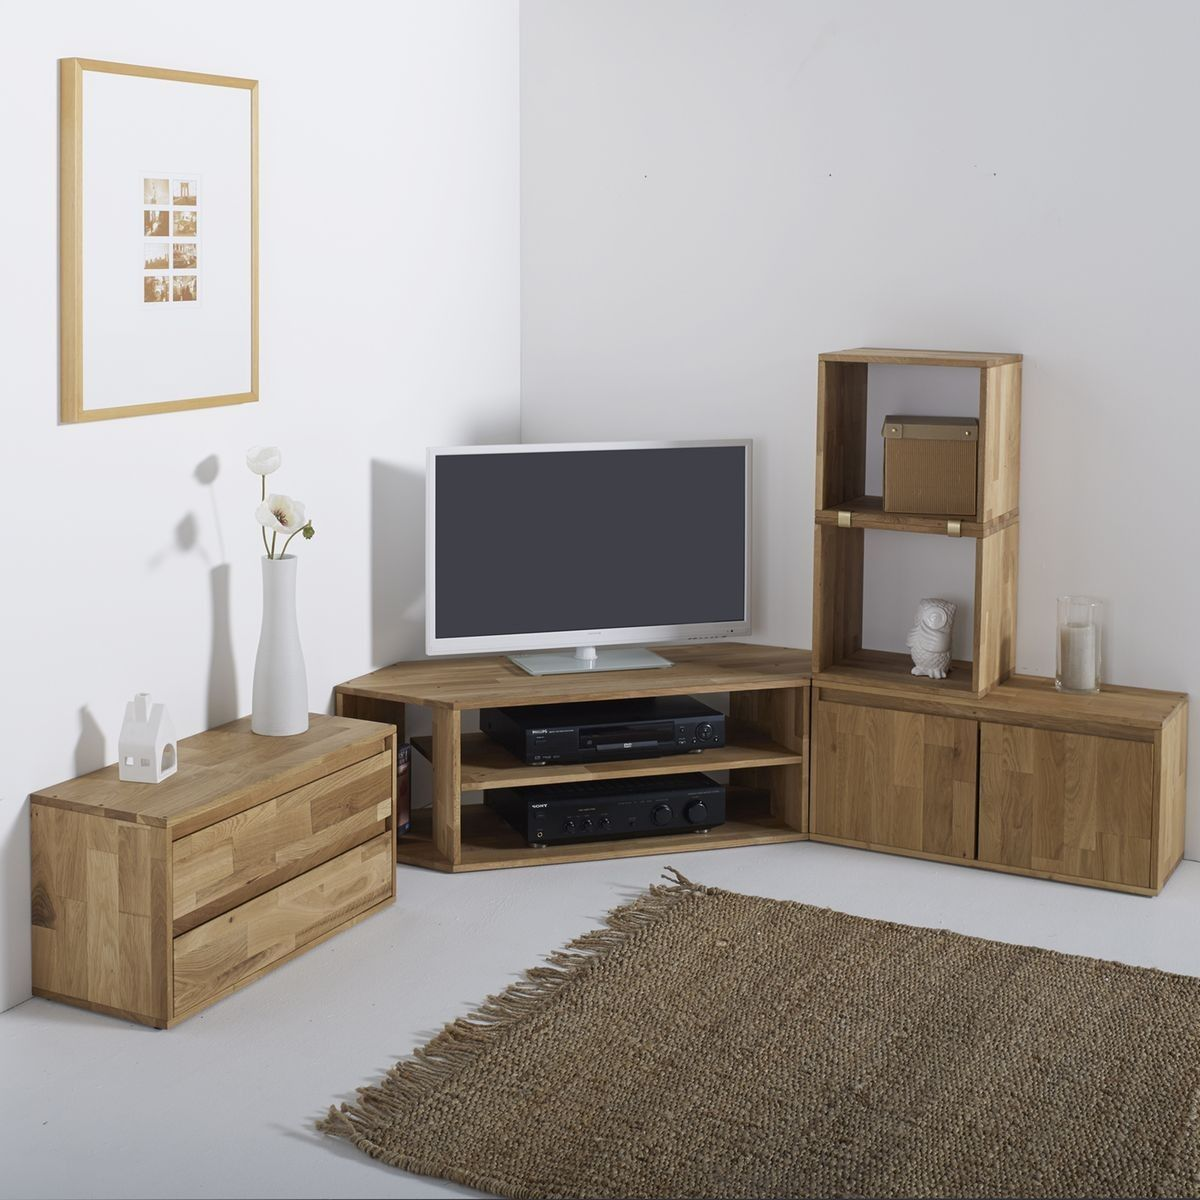 Table Tv Angle - Meuble Tv D Angle Ch Ne Massif Edgar Corner Tv Tv Unit And Tvs[mjhdah]https://www.mod-mega.com/wp-content/uploads/2017/11/meuble-tele-d-angle-design-best-of-meuble-tv-haut-pas-cher-of-meuble-tele-d-angle-design.jpg